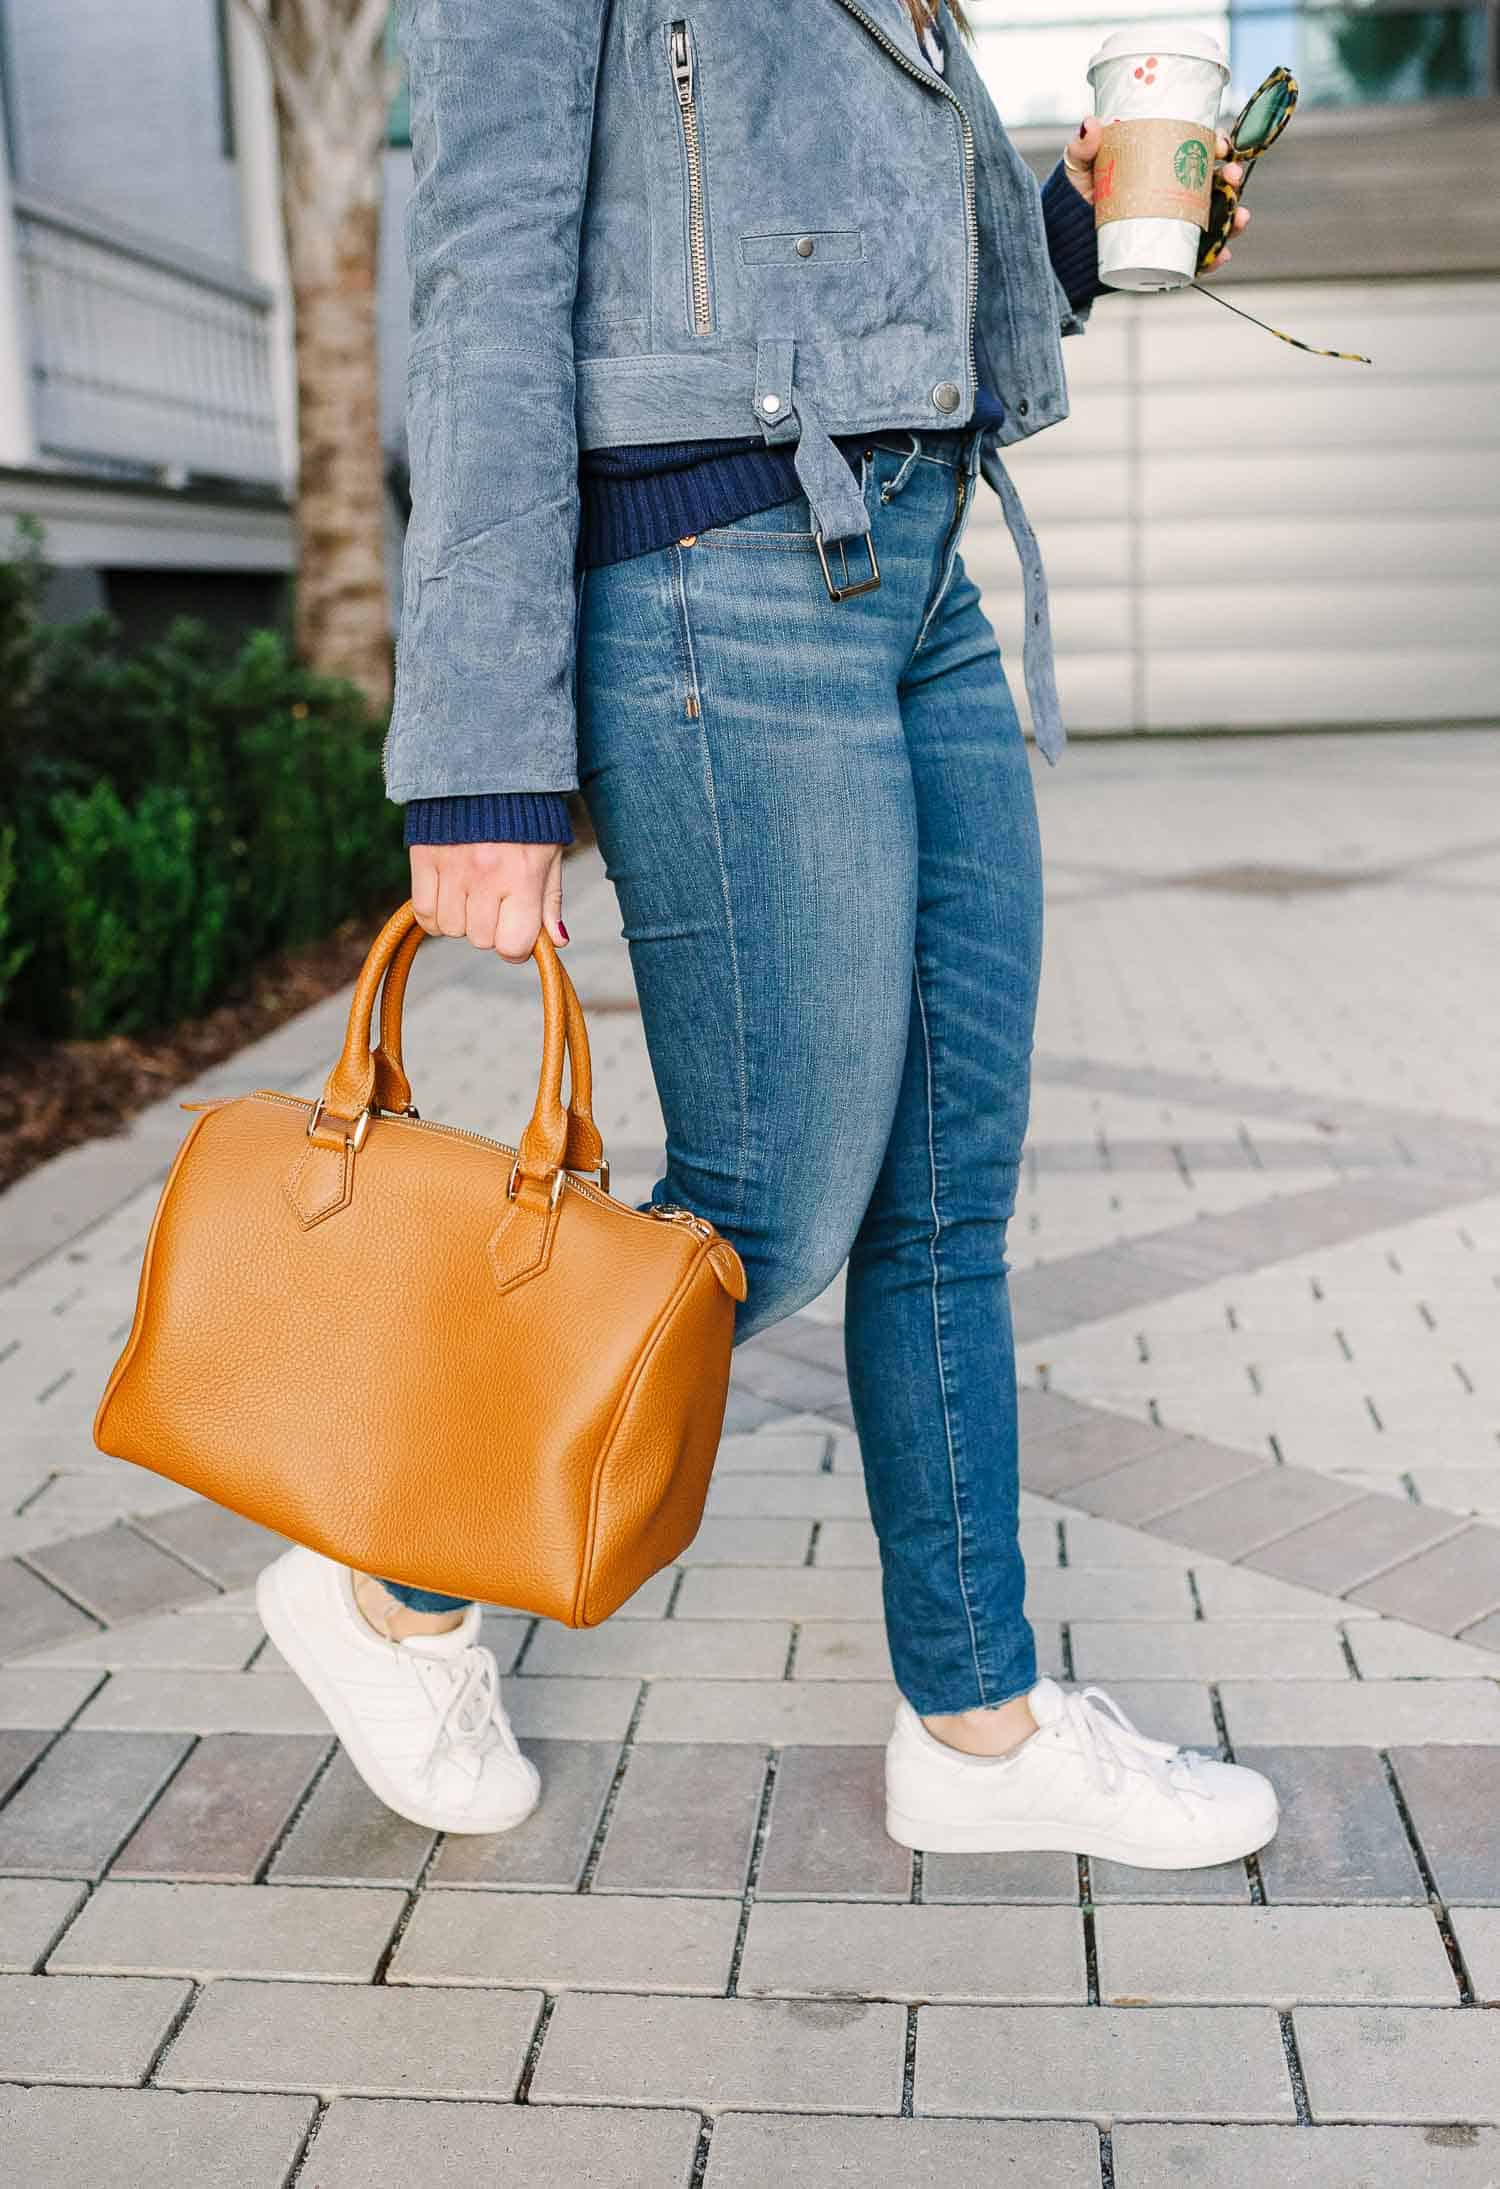 BLANK NYC JACKET • WHITE ADIDAS • GIGI NEW YORK BAG C/O • MADEWELL JEANS